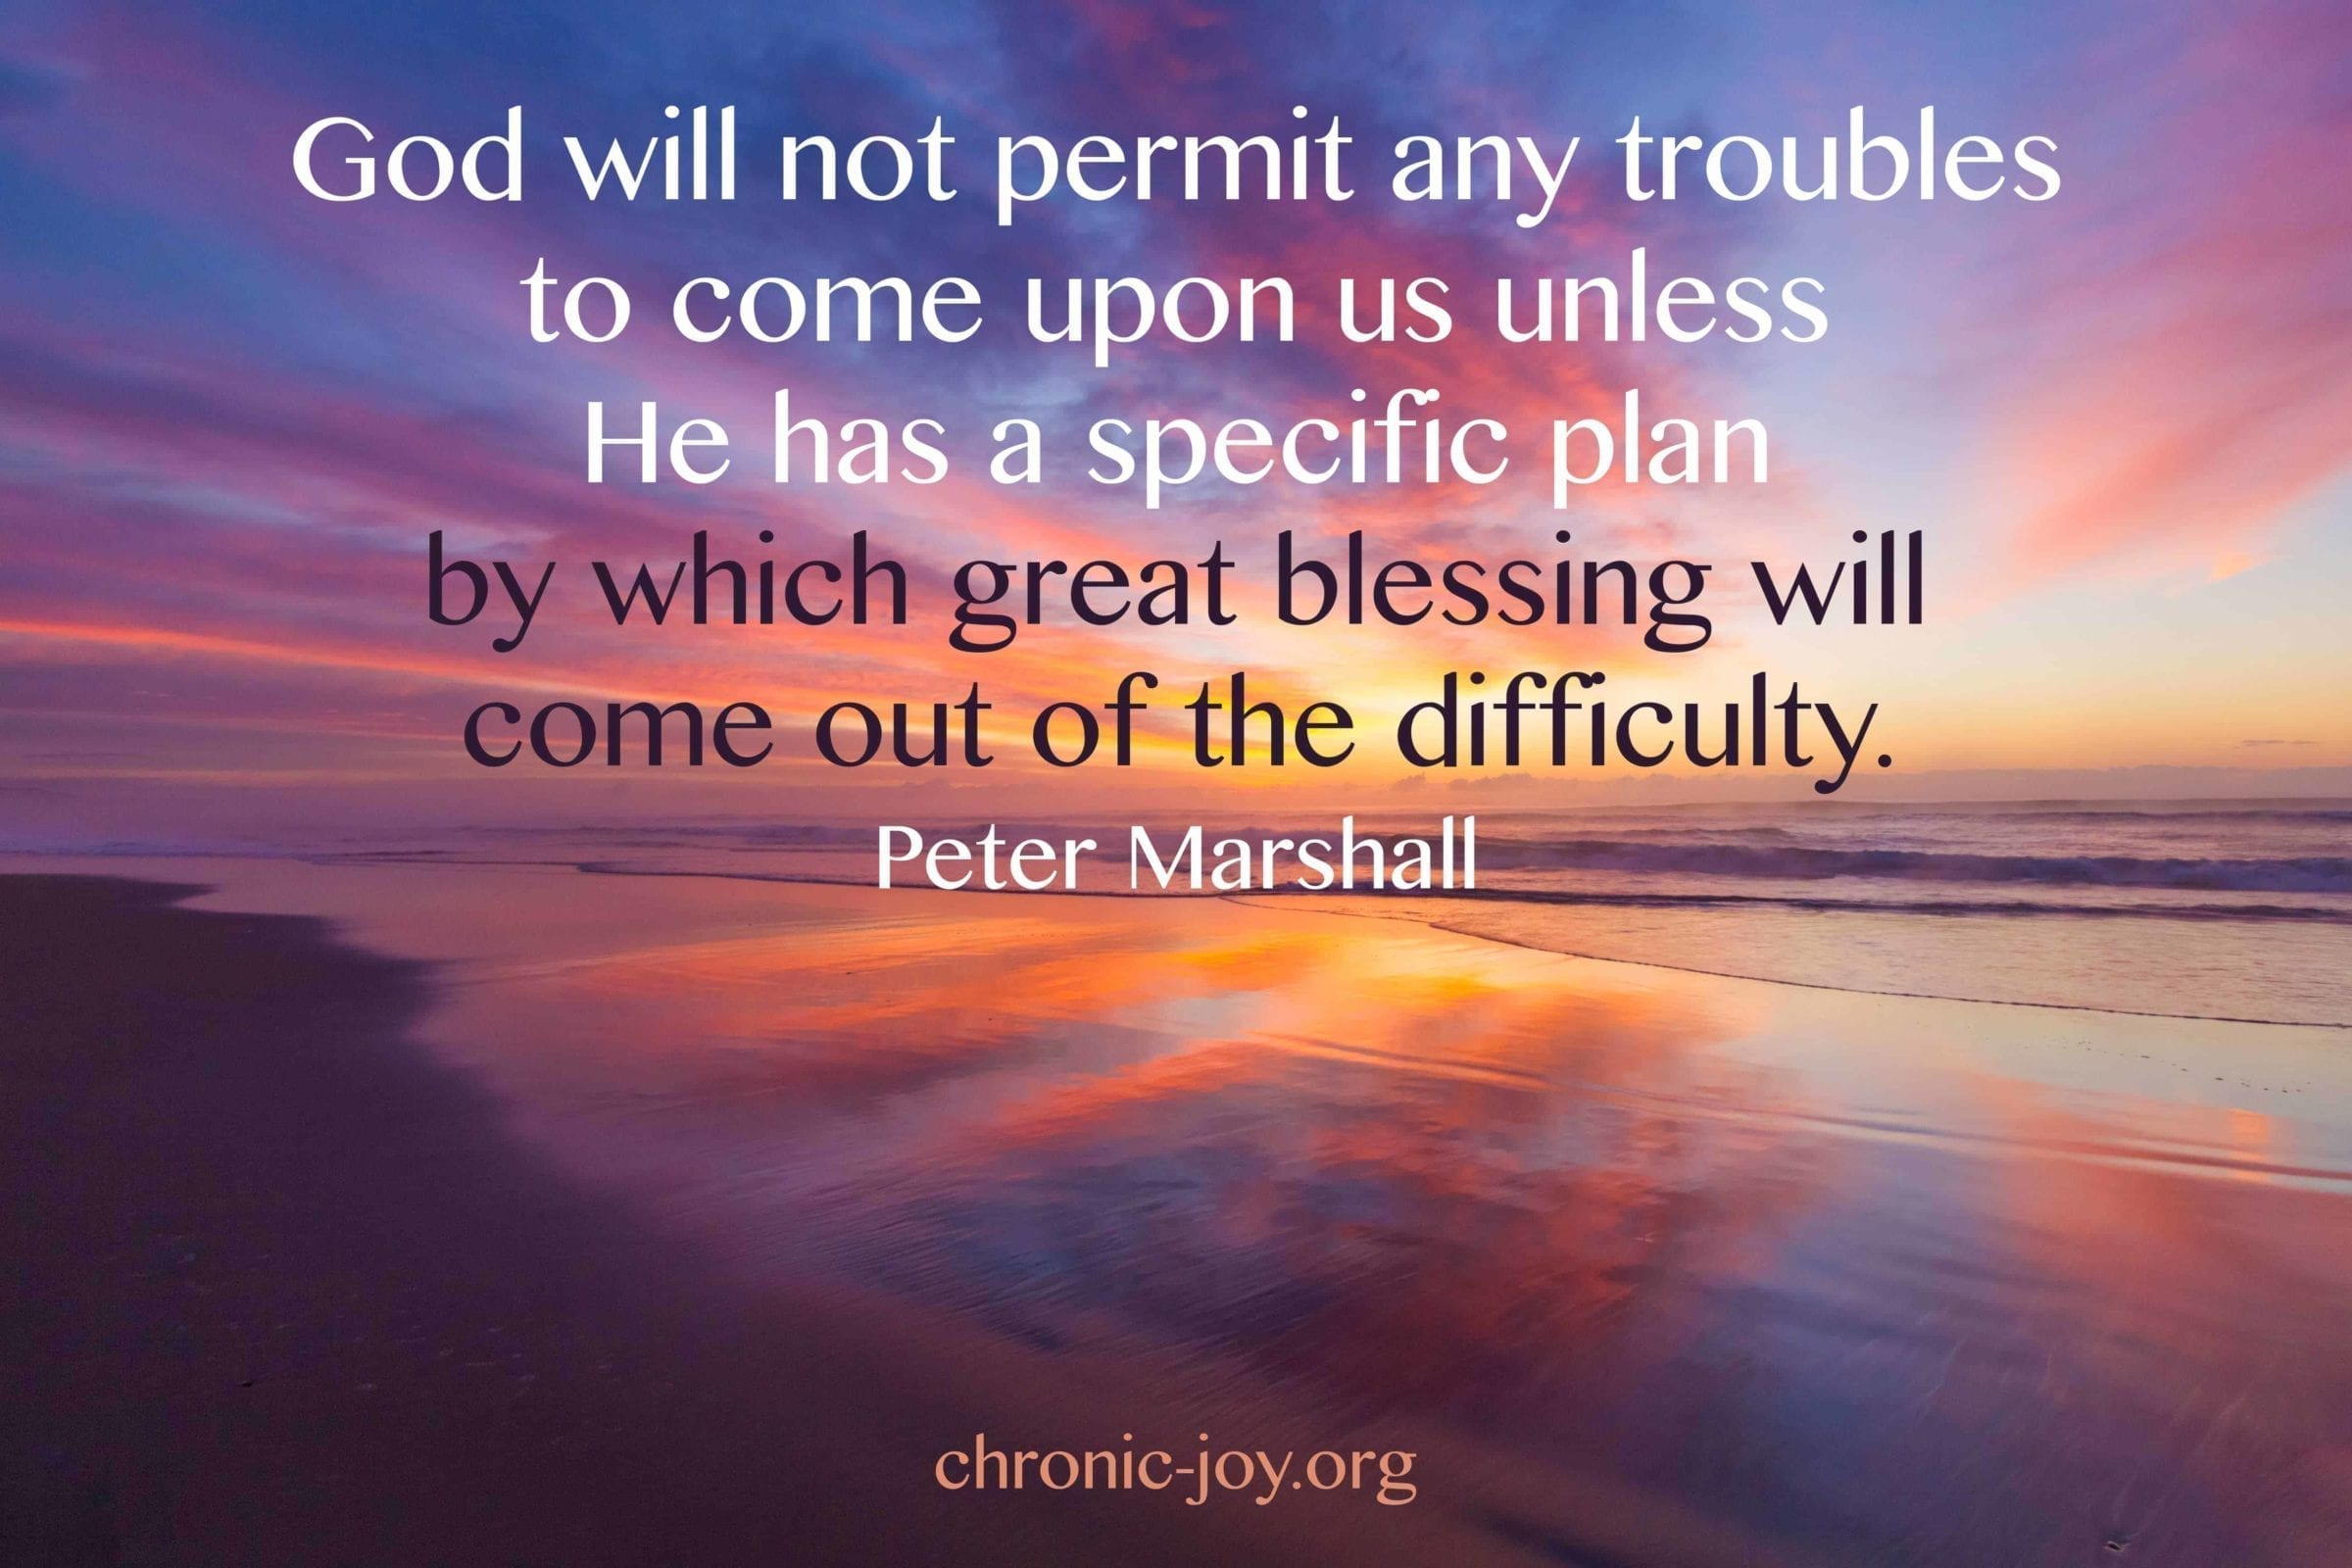 Great blessing from difficulty.